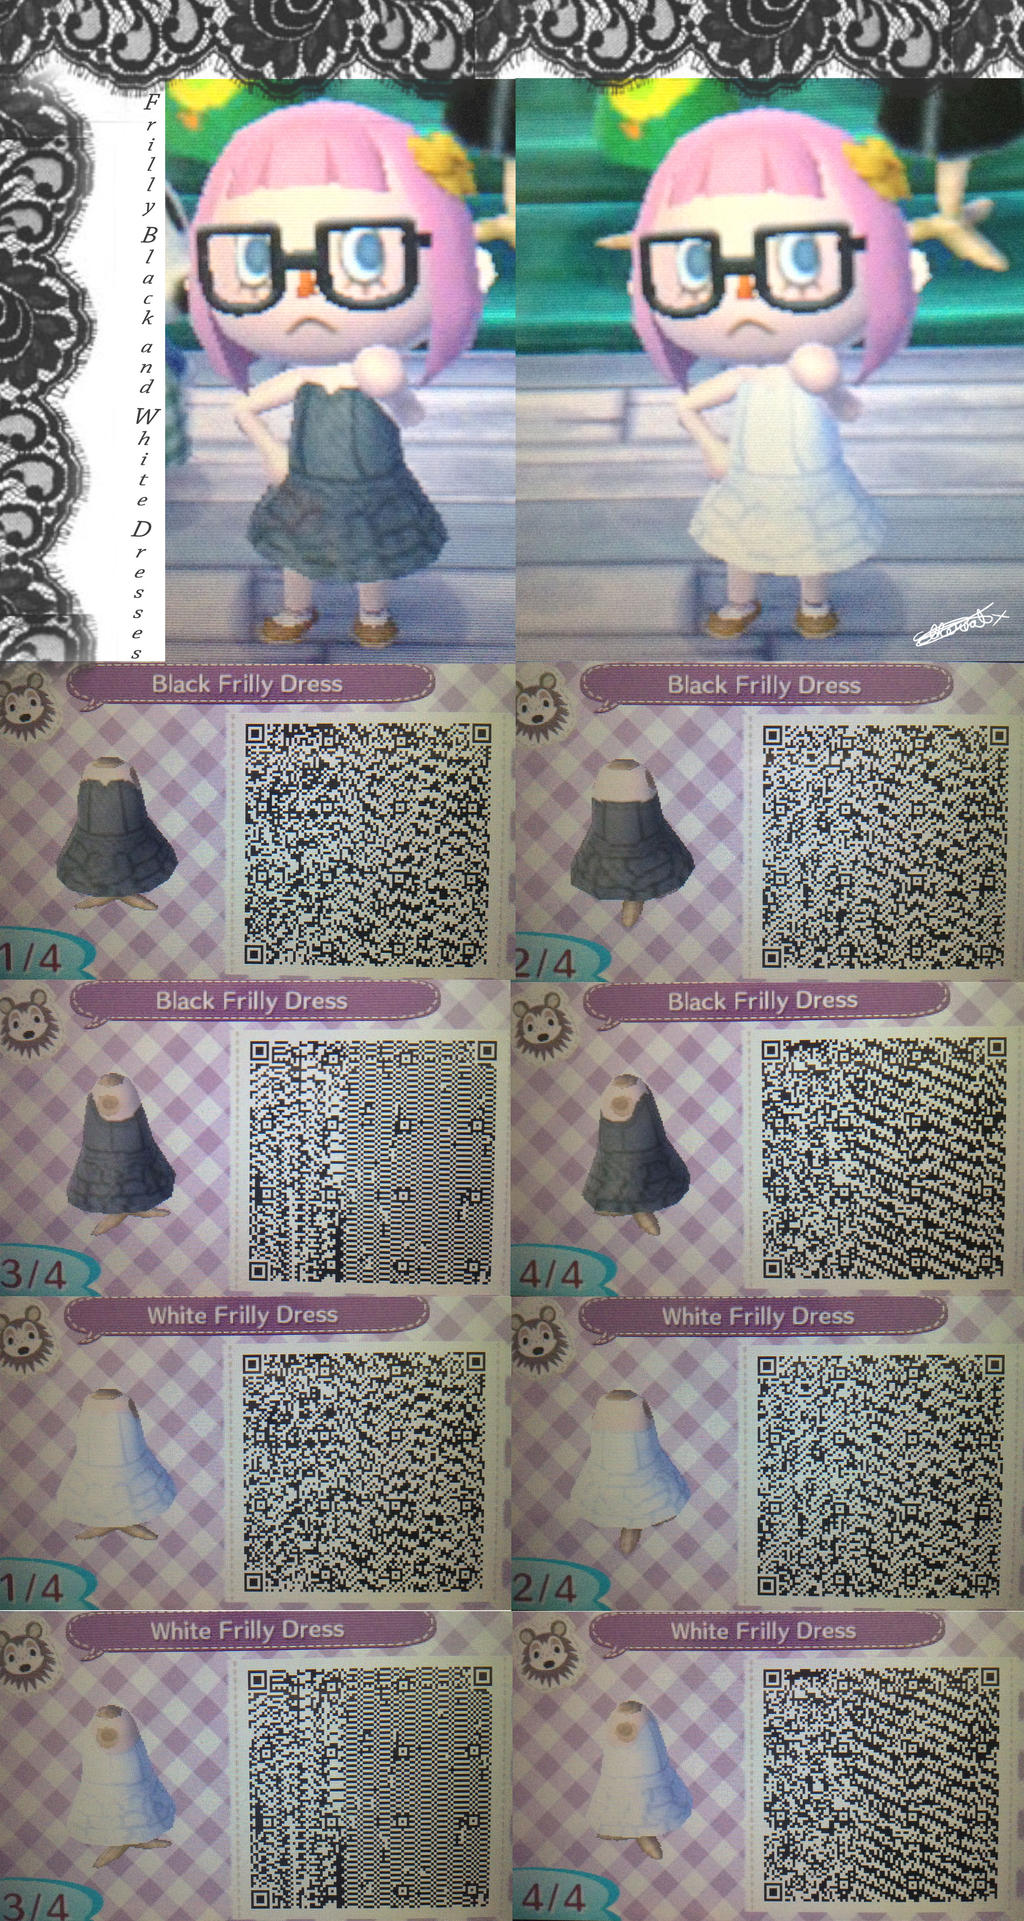 Black dress qr code - Megansayomi 5 0 Ac Nl Frilly Black And White Dresses Qr Code By Etherealx P